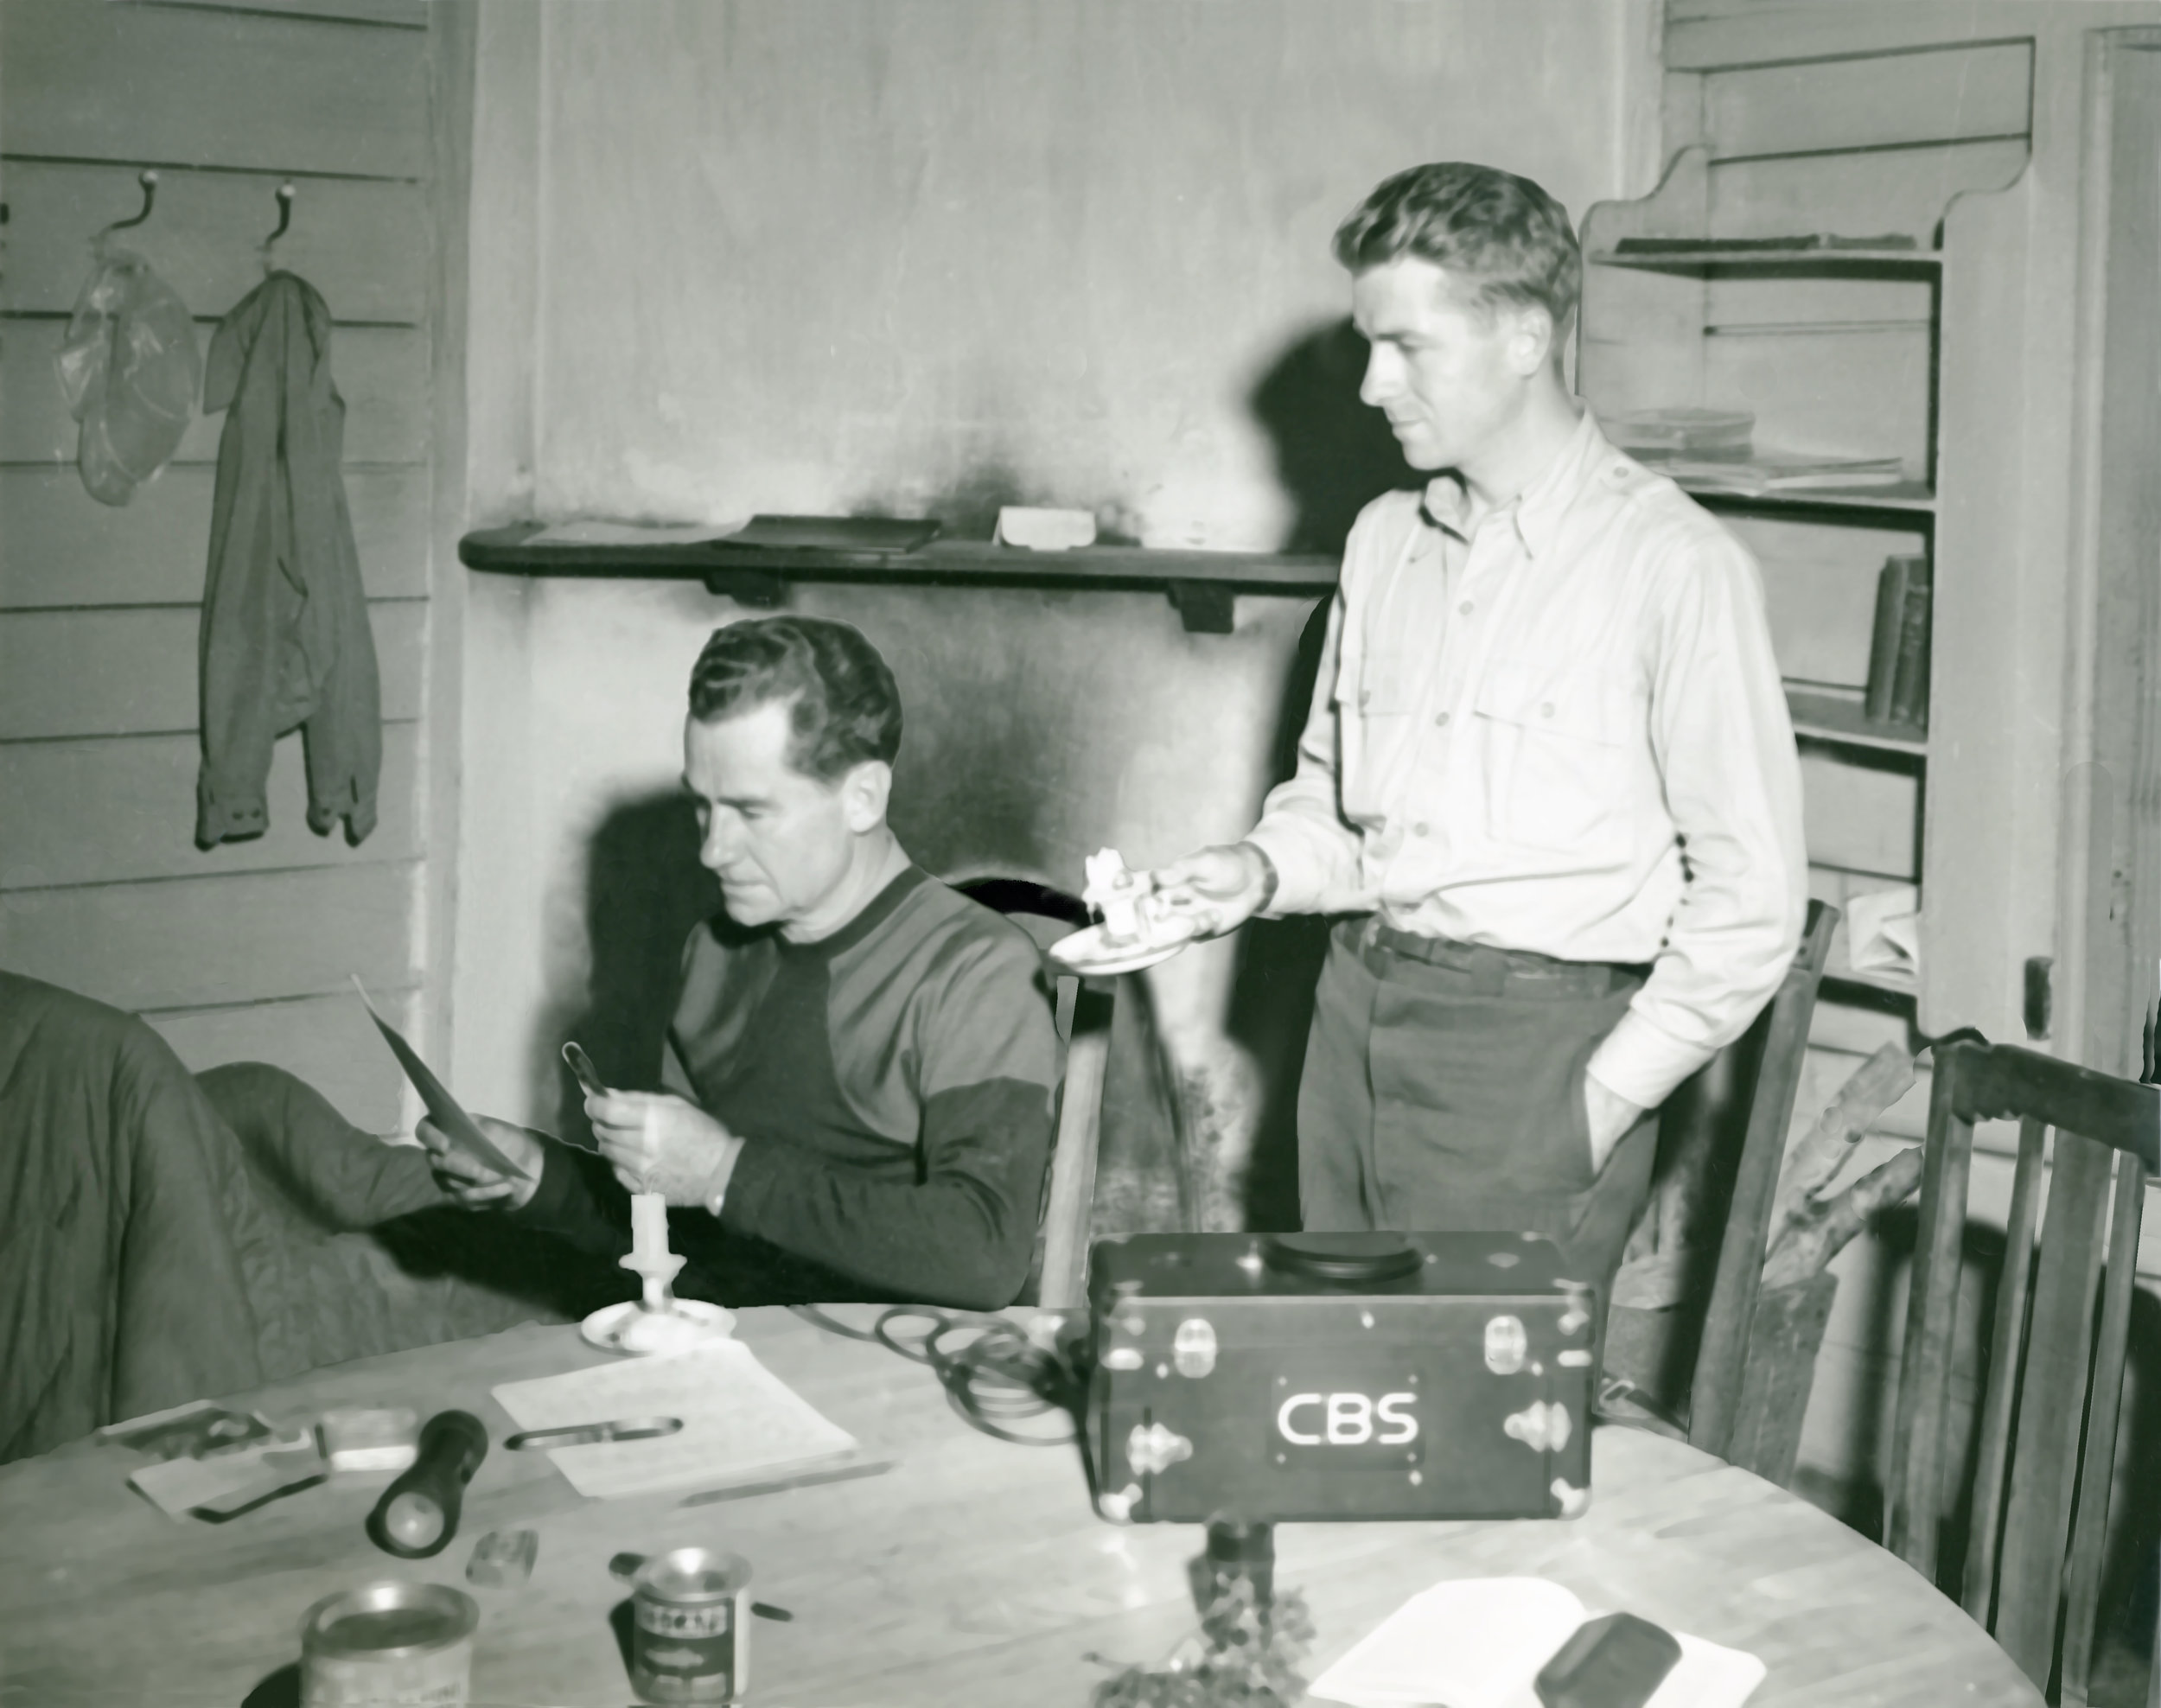 Voice of America: Lowell Thomas and the Rise of Broadcast News - Director: Richard MoultonCountry: USARun Time: 1 hour 25 minutesLanguage: English